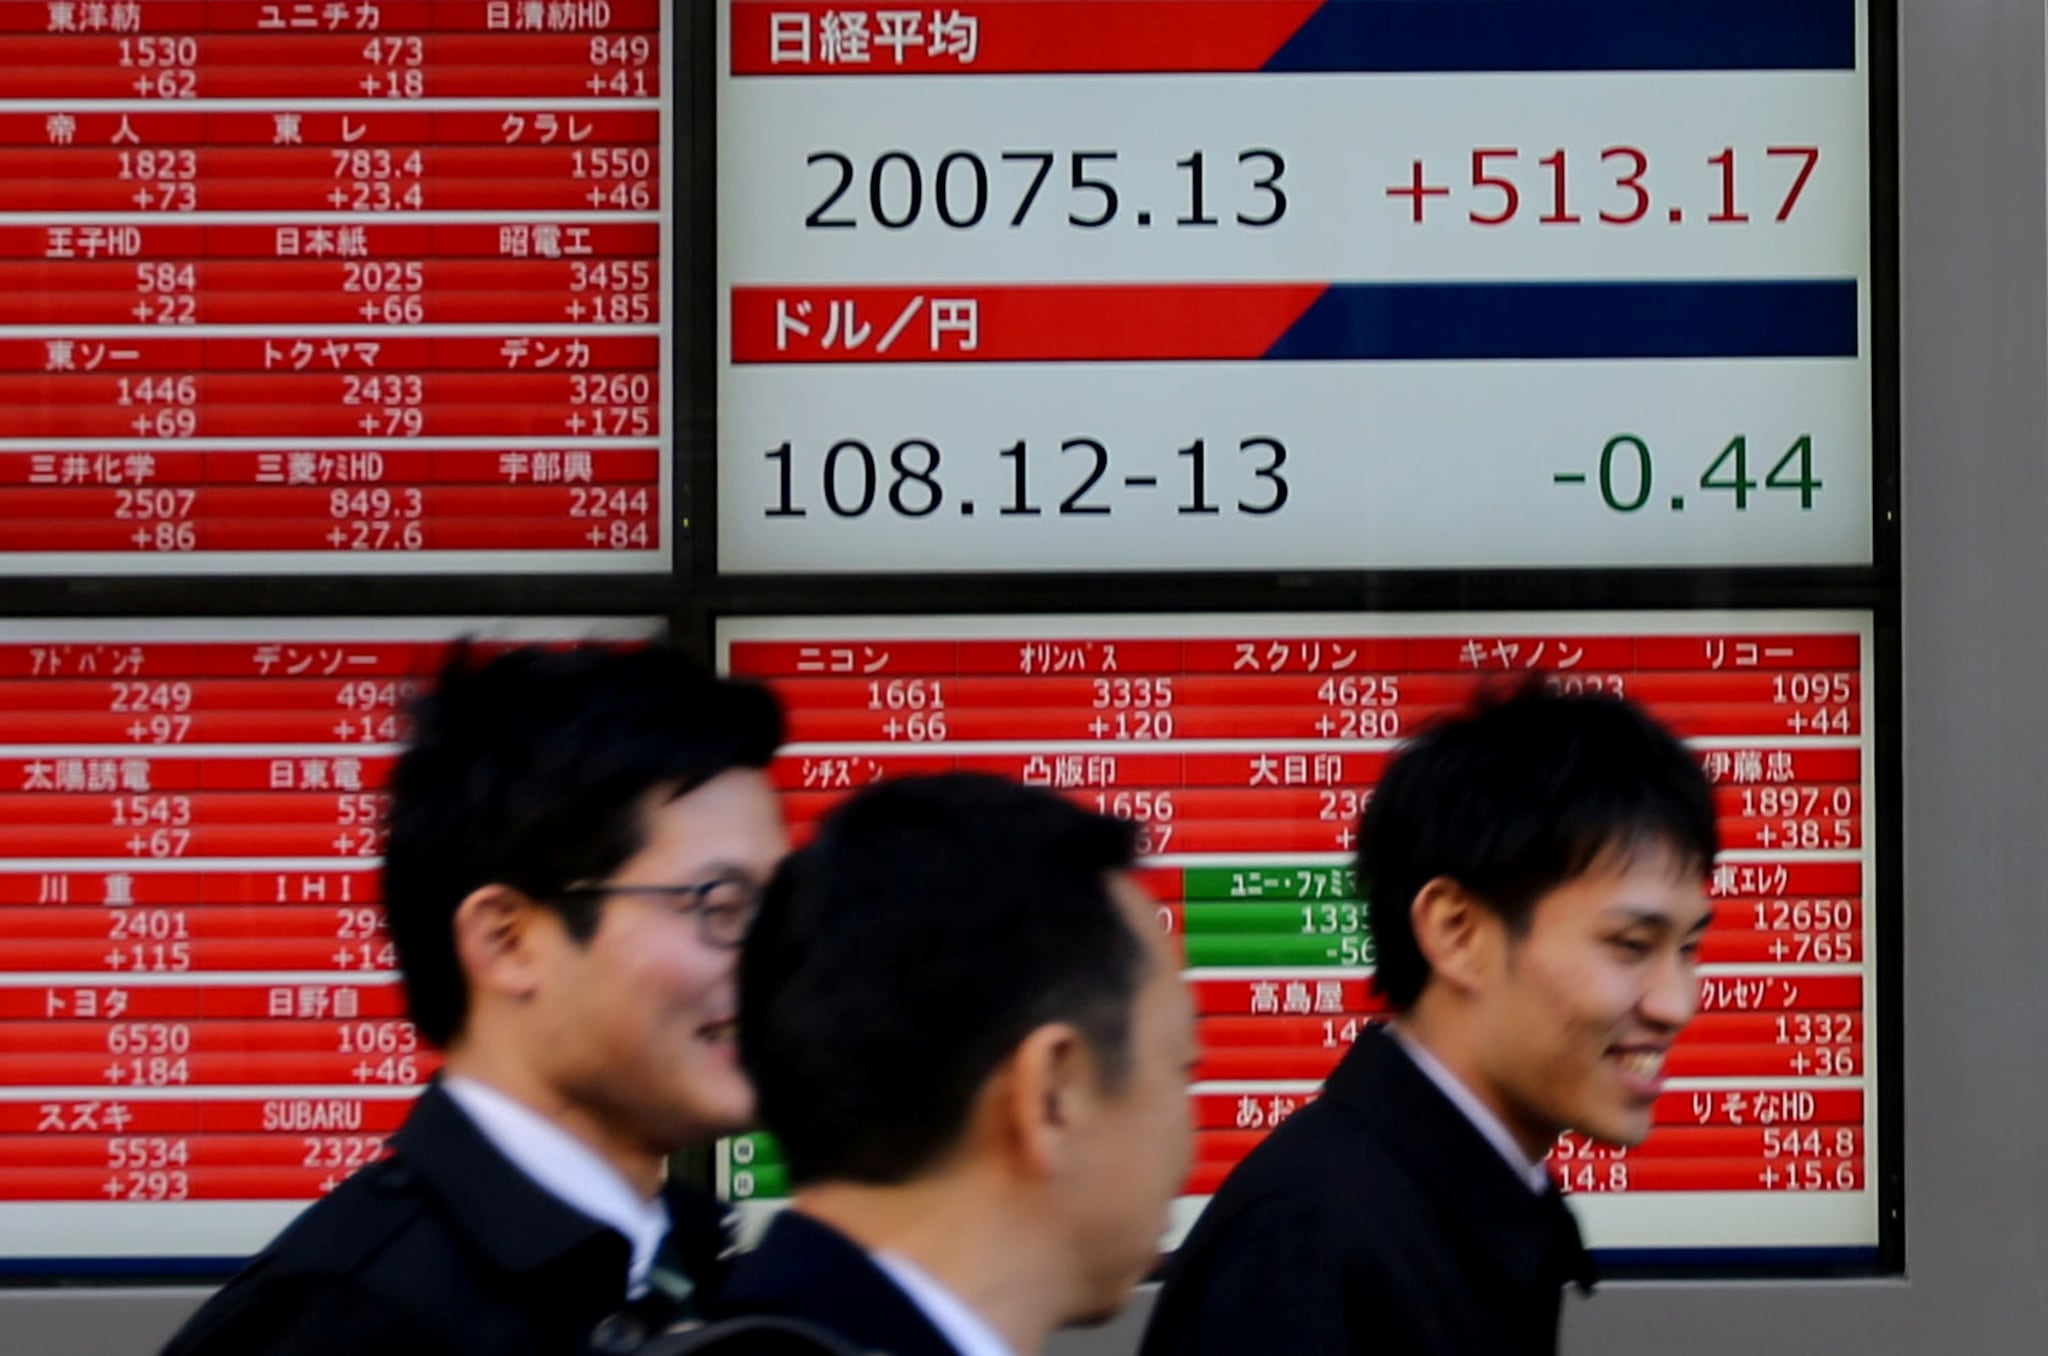 1. Asia: Asian stocks traded lower on Friday after a surprise tariff announcement from the United States escalated trade tensions between Washington and Beijing. The Nikkei in Japan plunged 2.01 percent in morning trade. The Topix fell 1.77 percent and Kospi declined 1.05 percent. (Image: Reuters)